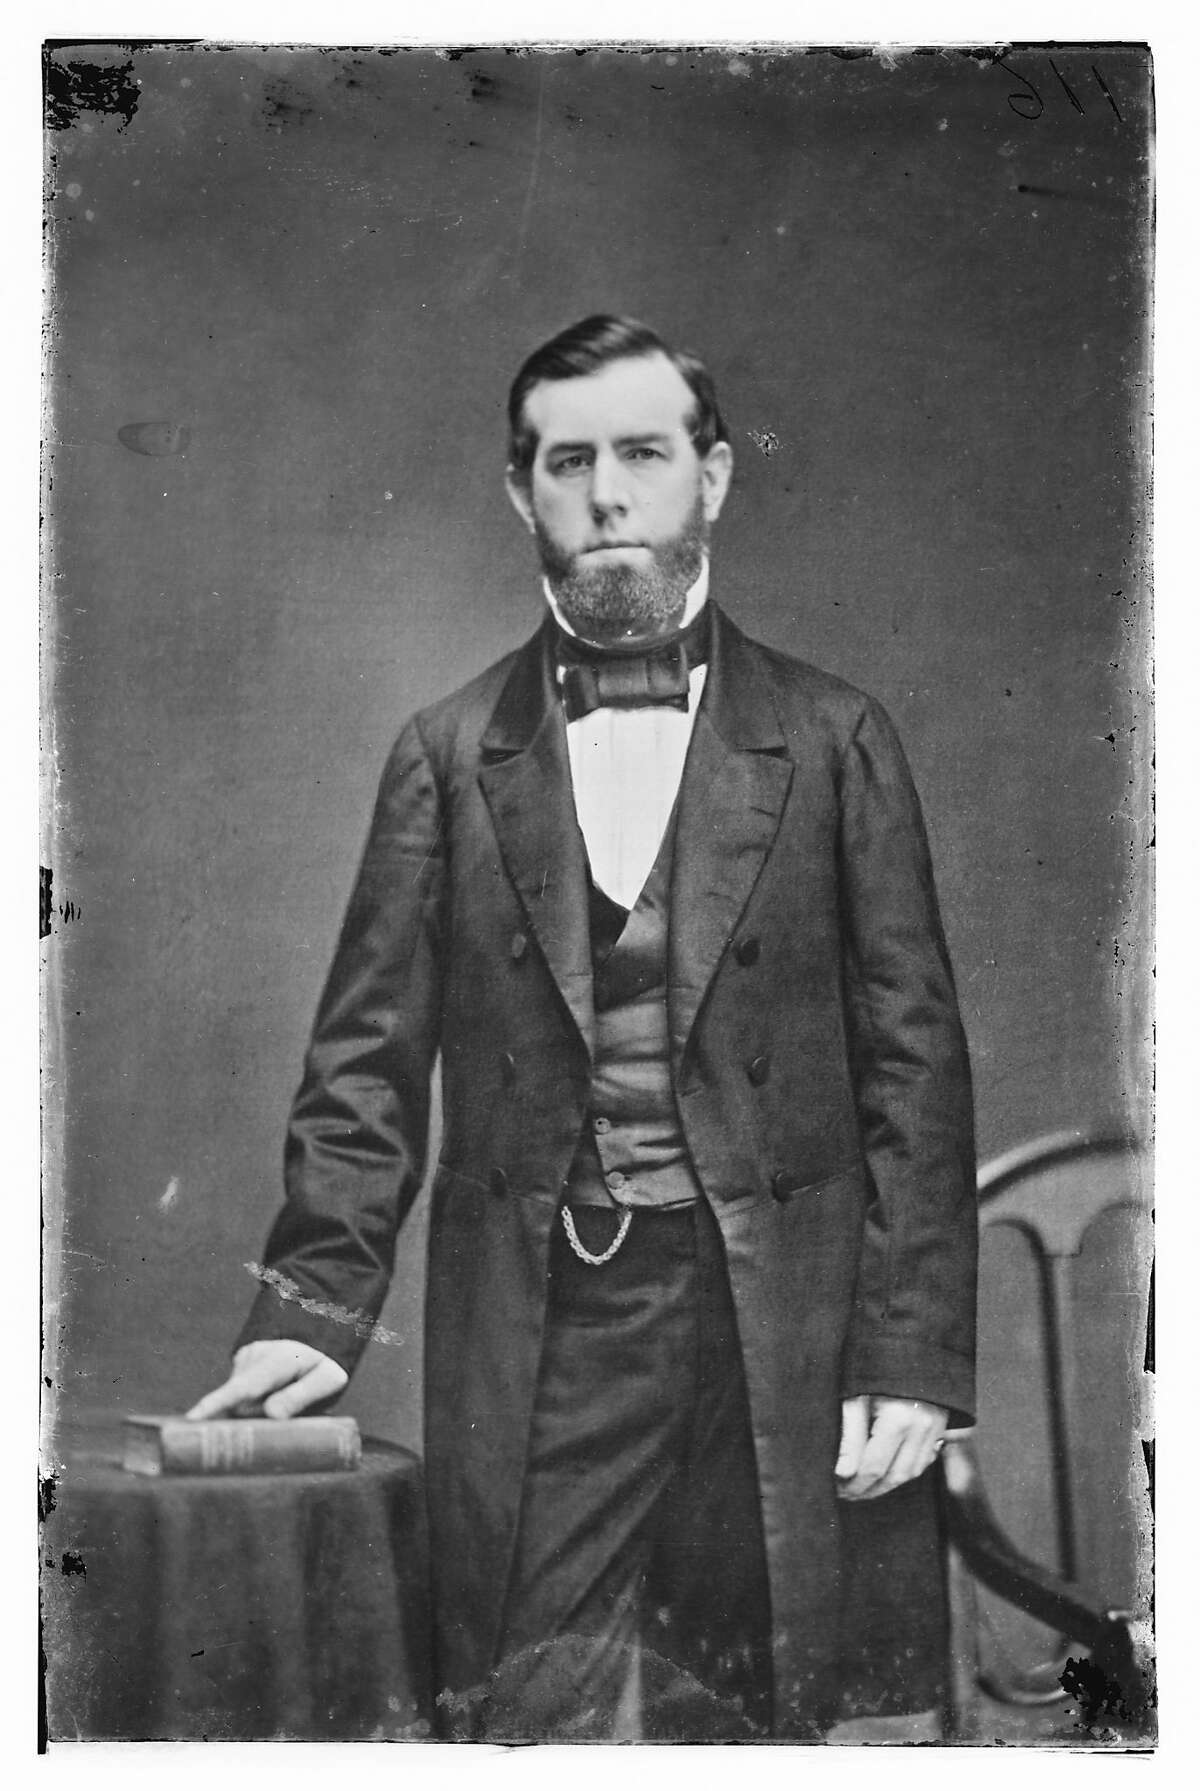 """FILE - In this undated black-and-white handout file photo provided by the Library of Congress, Sen. David Broderick, D-Calif. is seen. Nearly two years before the first shots were fired in the Civil War, simmering hostilities over slavery erupted on a """"field of honor"""" in California, where a pro-slavery judge mortally wounded an anti-slavery senator in a duel. (AP Photo/Library of Congress)"""